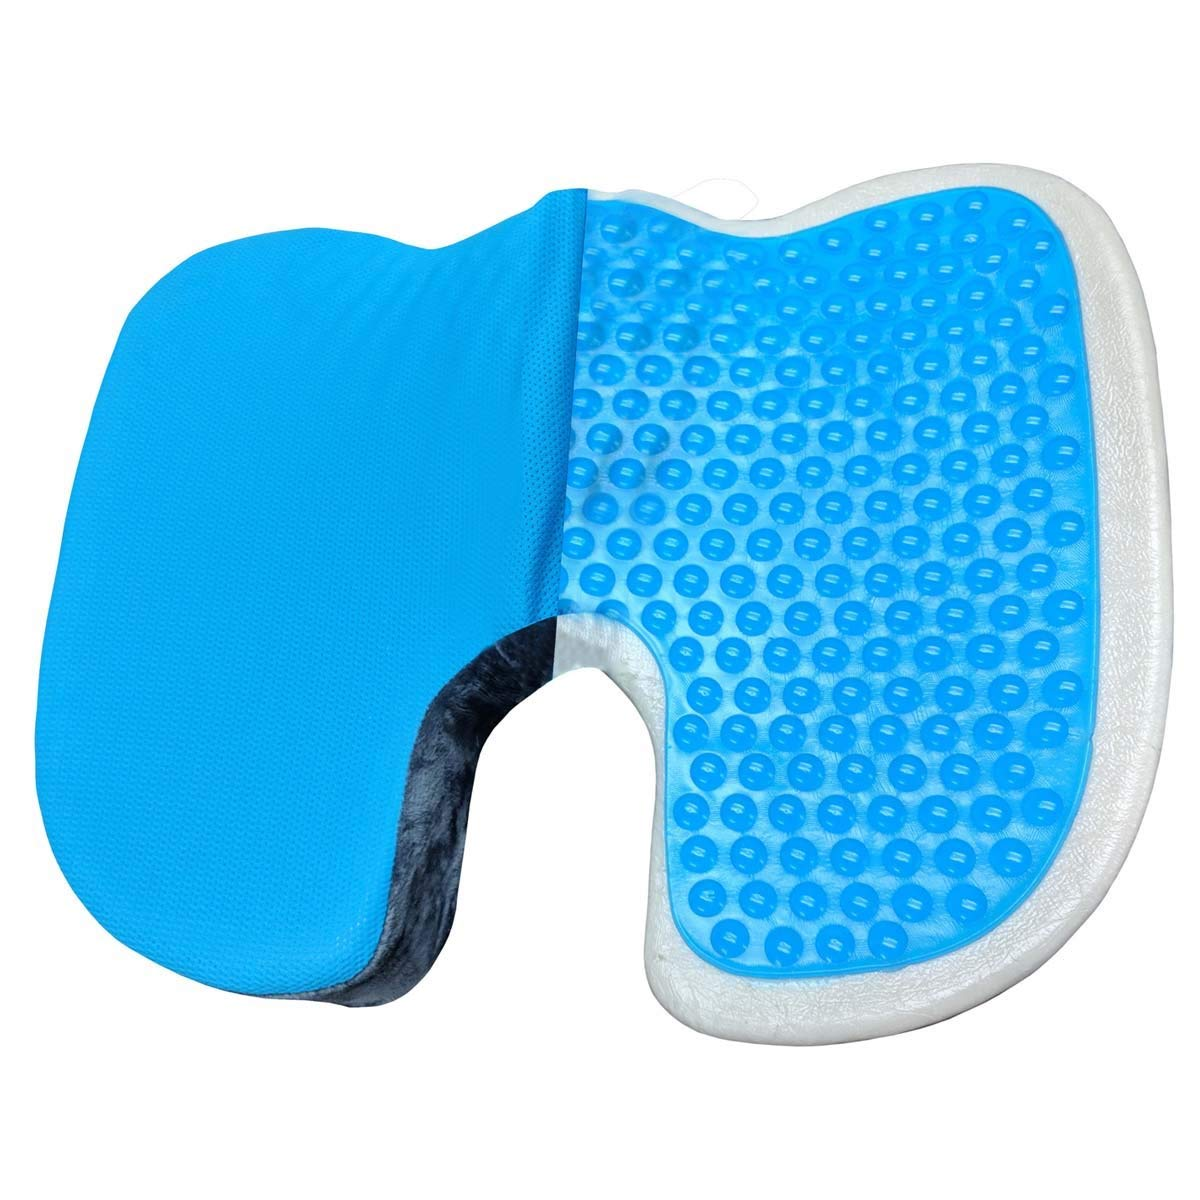 Orthopedic Seat Cushion with Cooling Gel - Viaggi